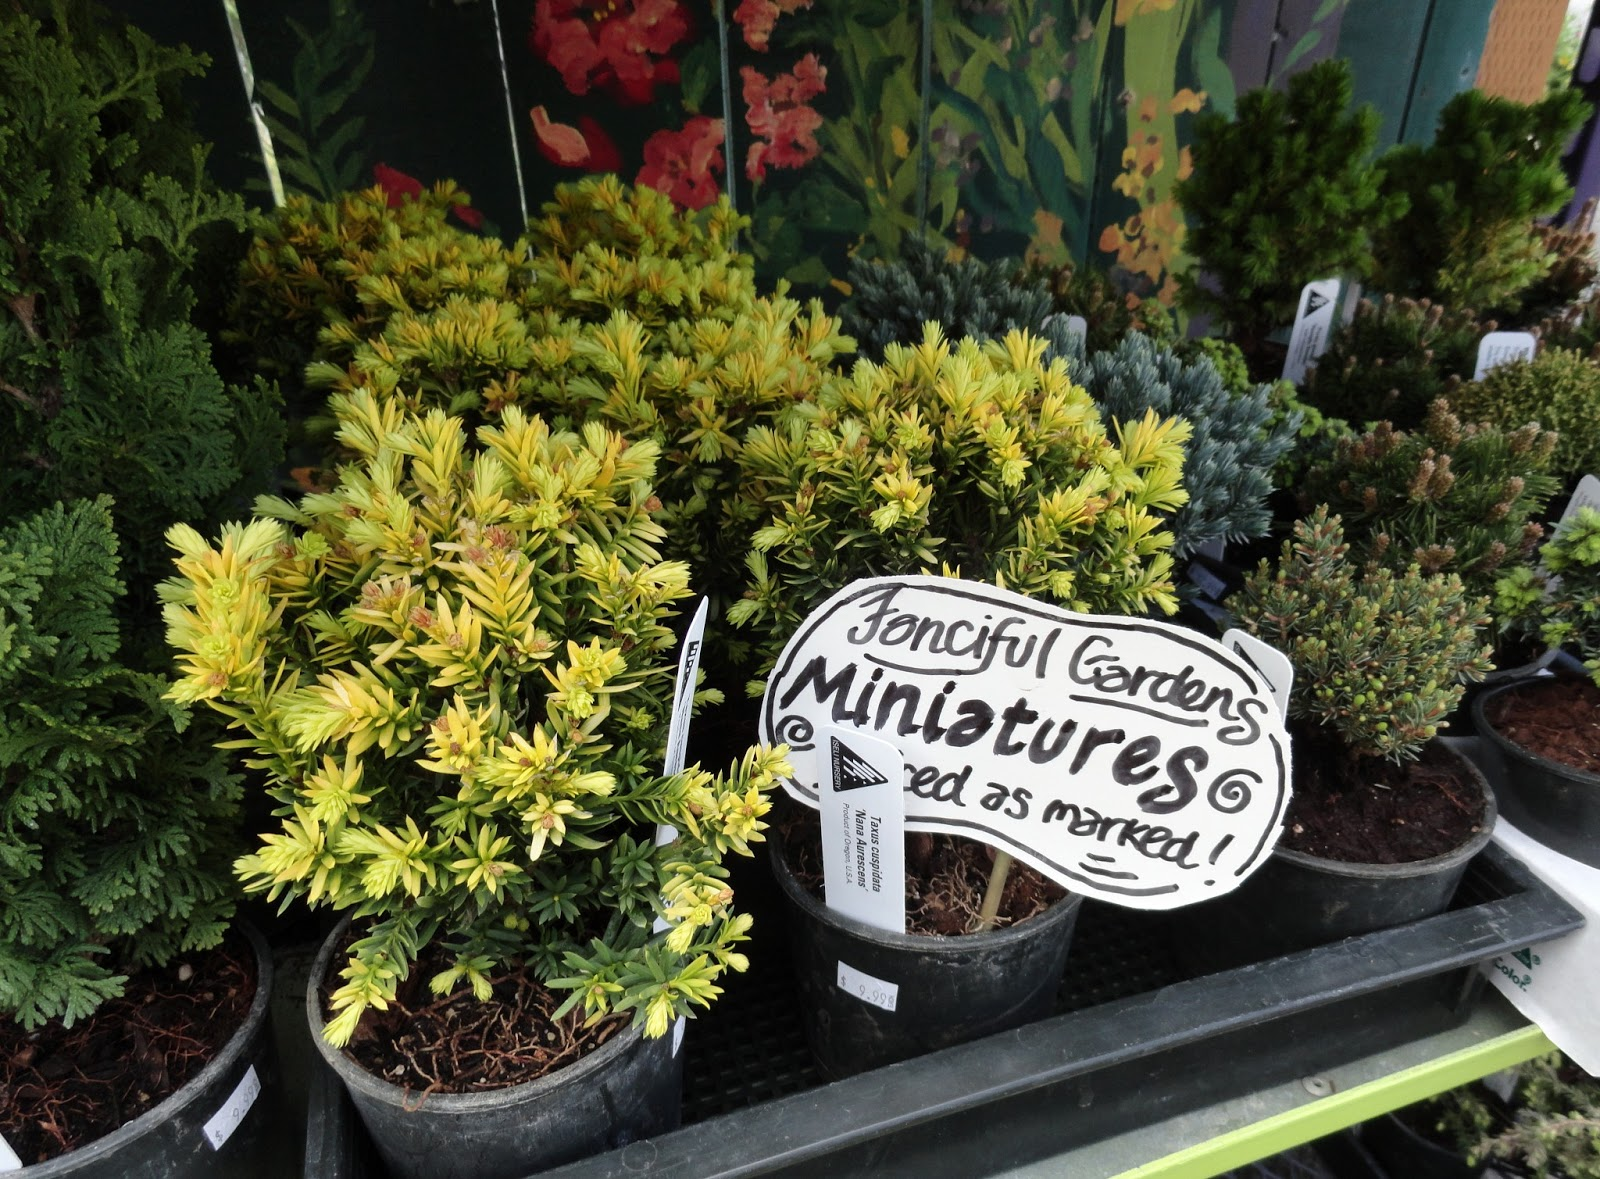 Blessed With So Many Fantastic Nurseries The Fact That It S Survived And Hopefully Prospered They Ve Been In Business Since At Least 2010 Spokane